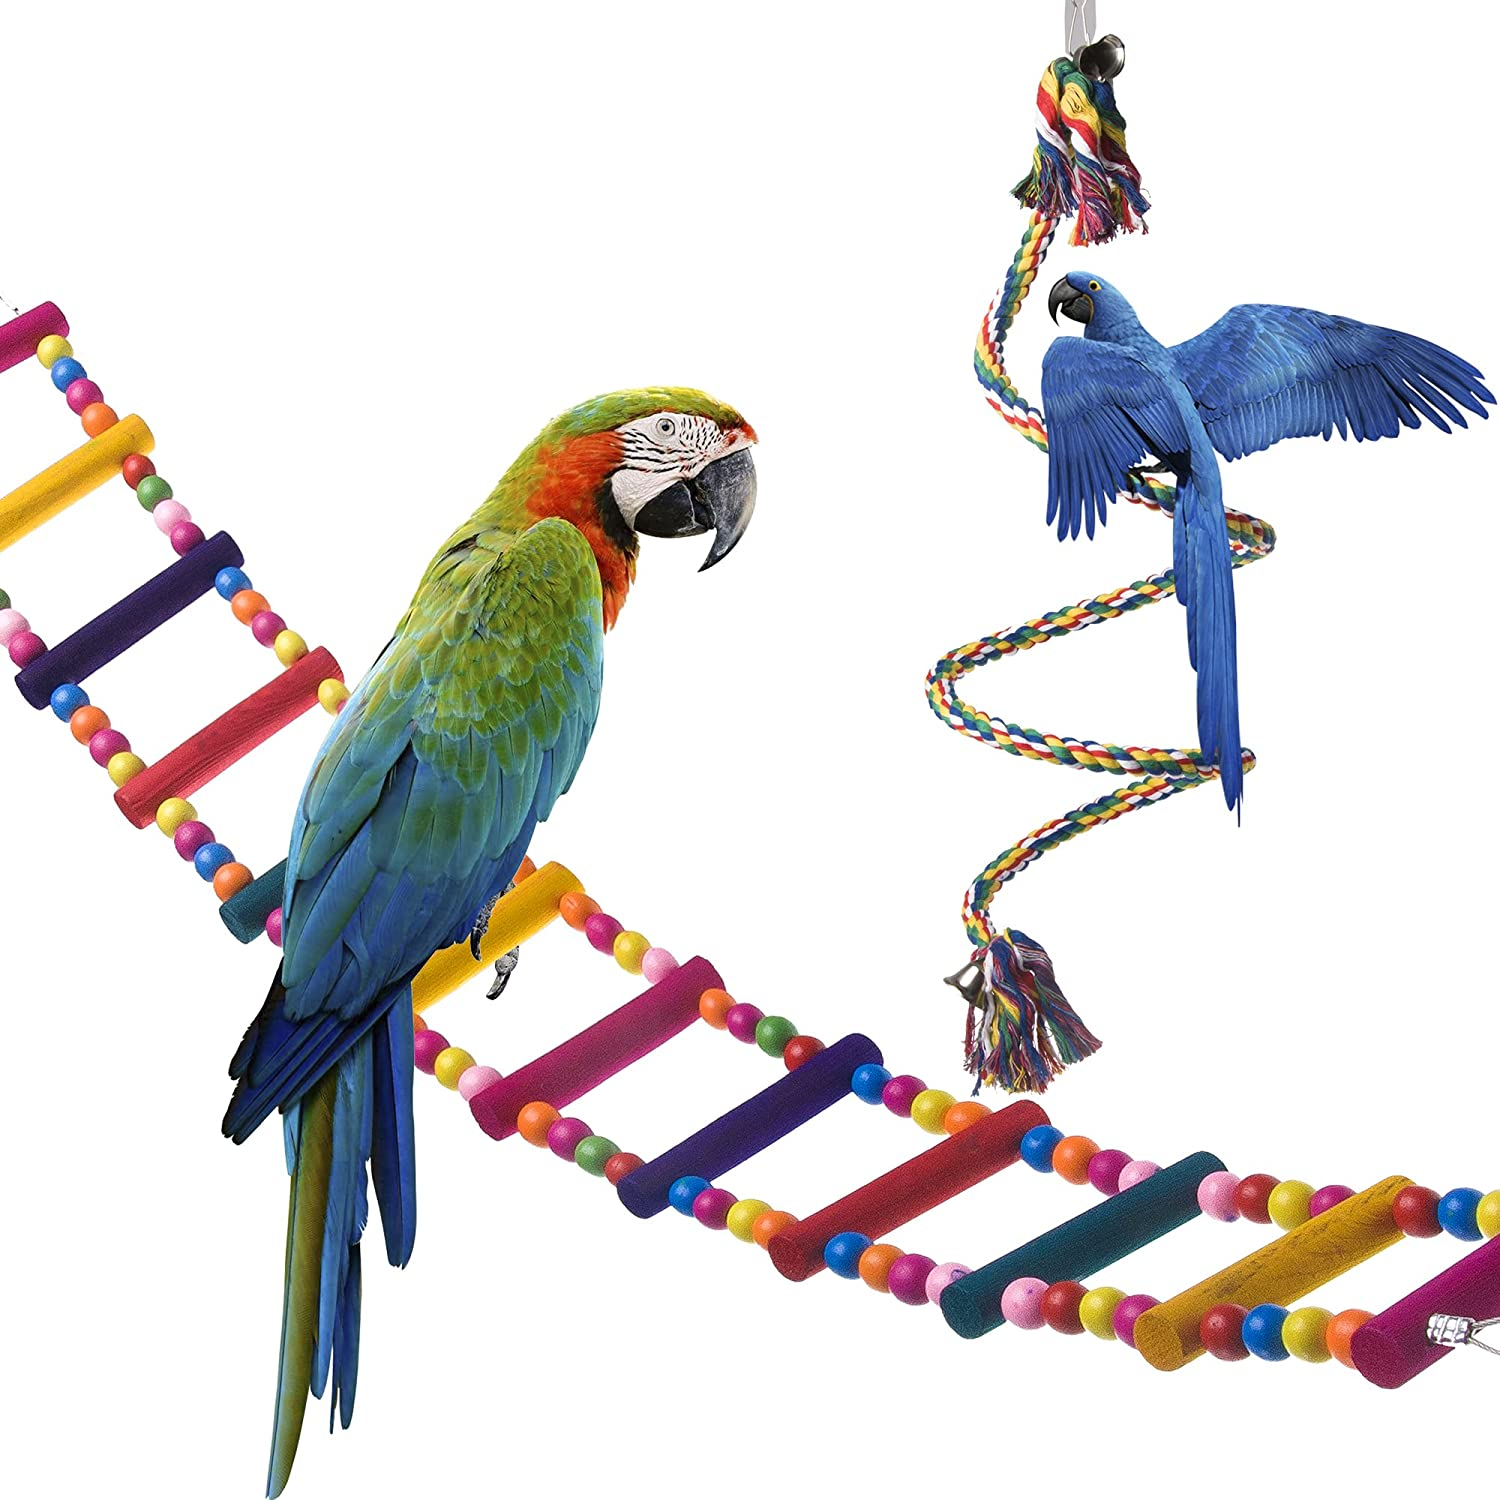 (Ladder+Rope) OnePlus Bird Ladder Parred Toys Cage Accessories for Cockatiel Conure Parakeet Small Macaw